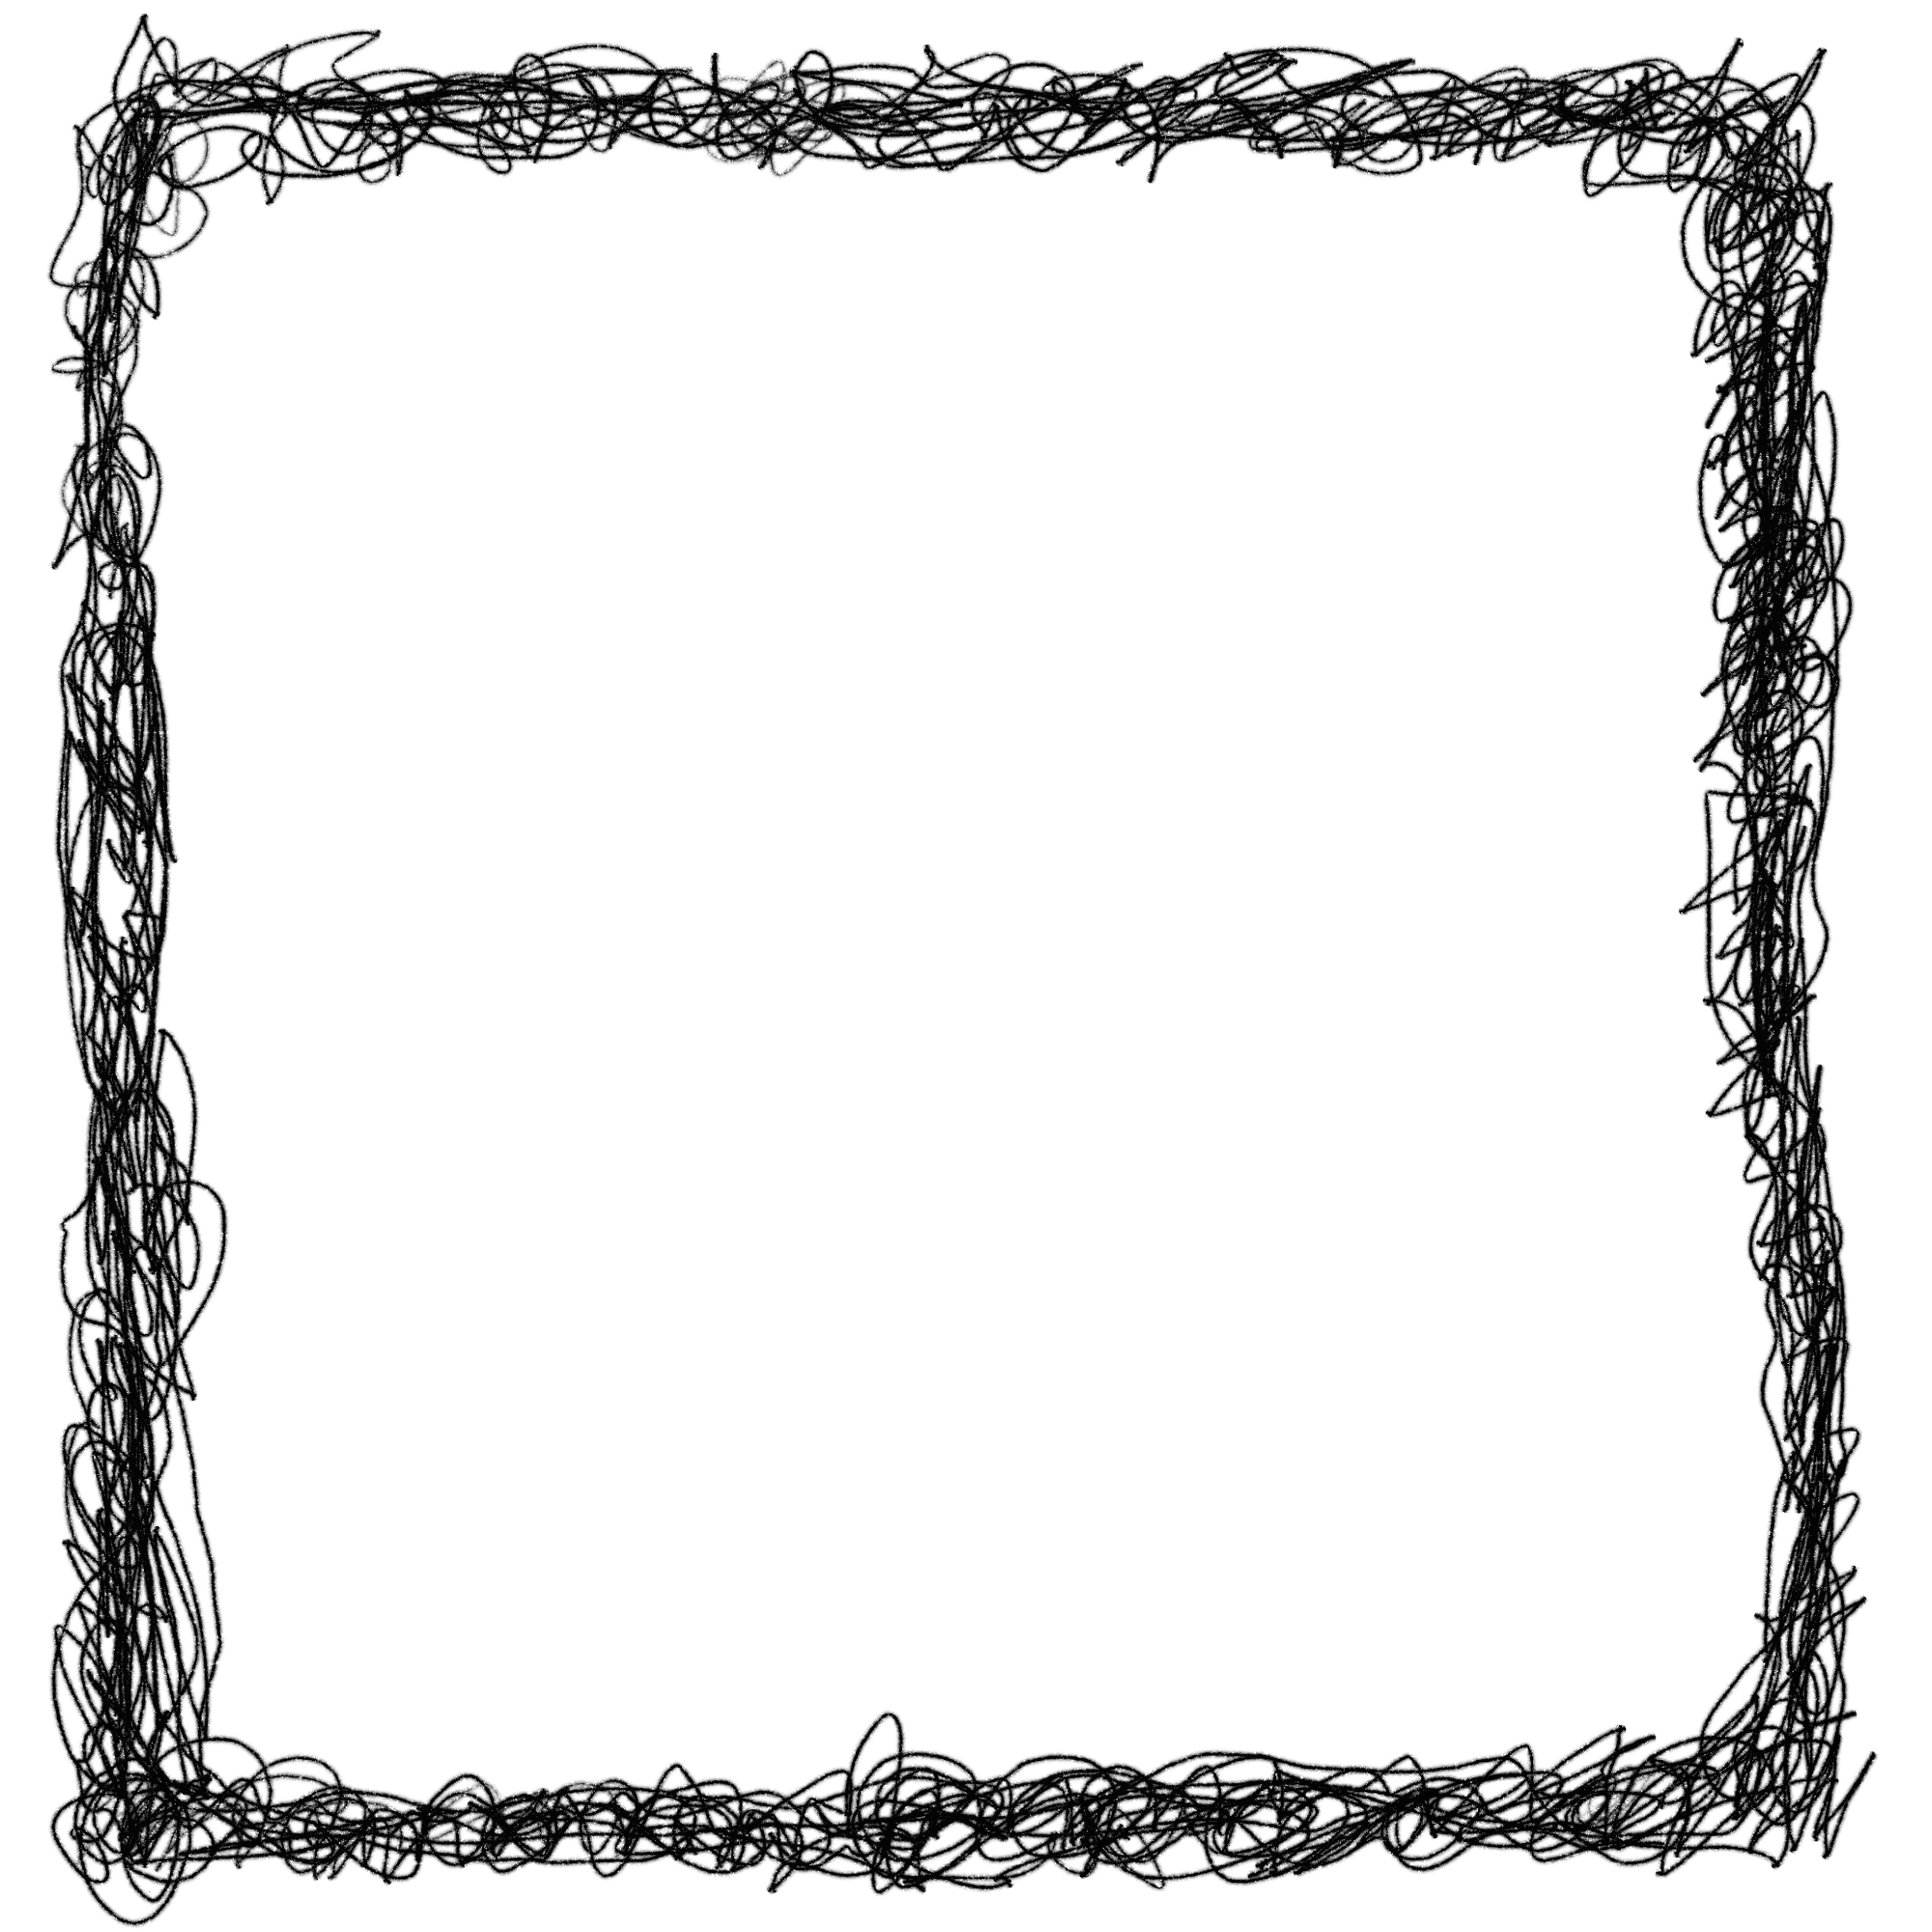 3% png square